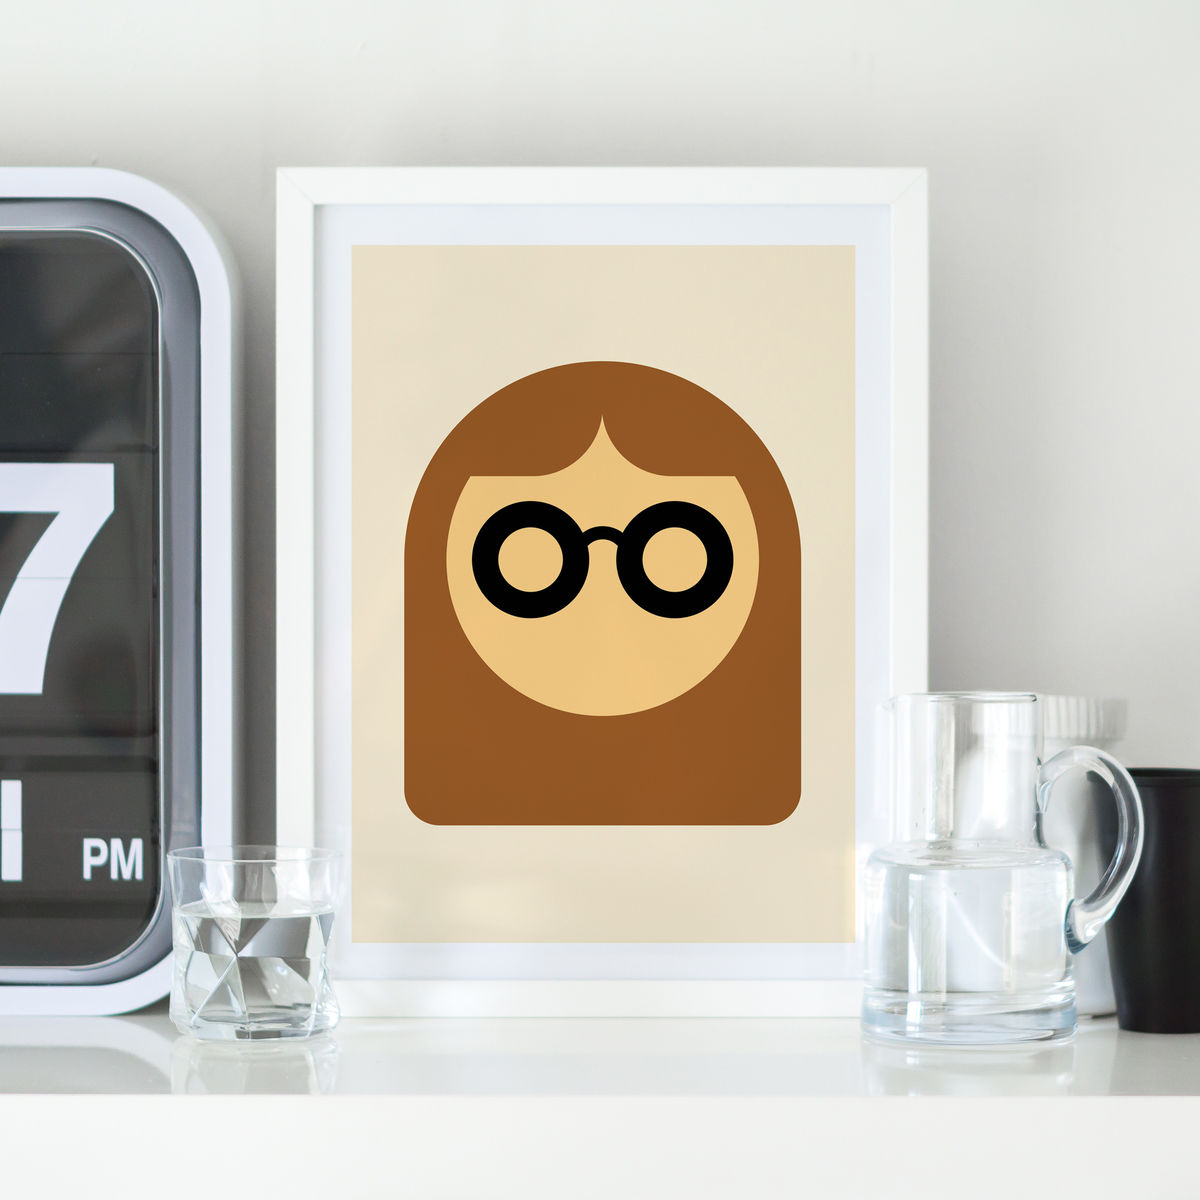 Basics : John Lennon - product images  of